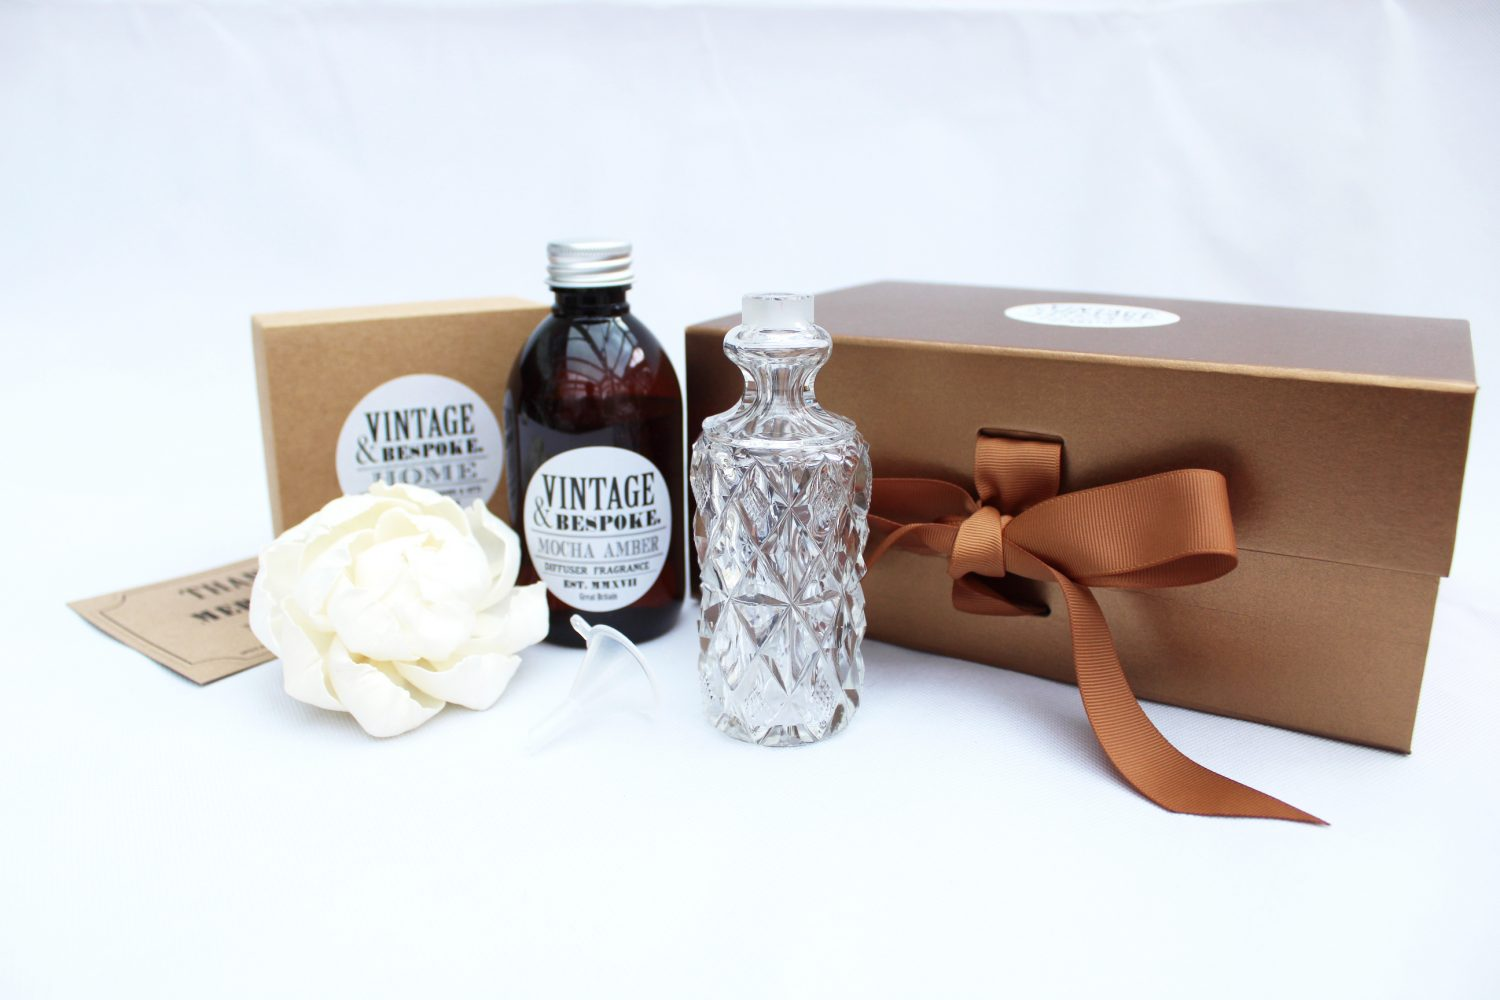 Large Vintage Bottle Gift set from Vintage & Bespoke Ltd.